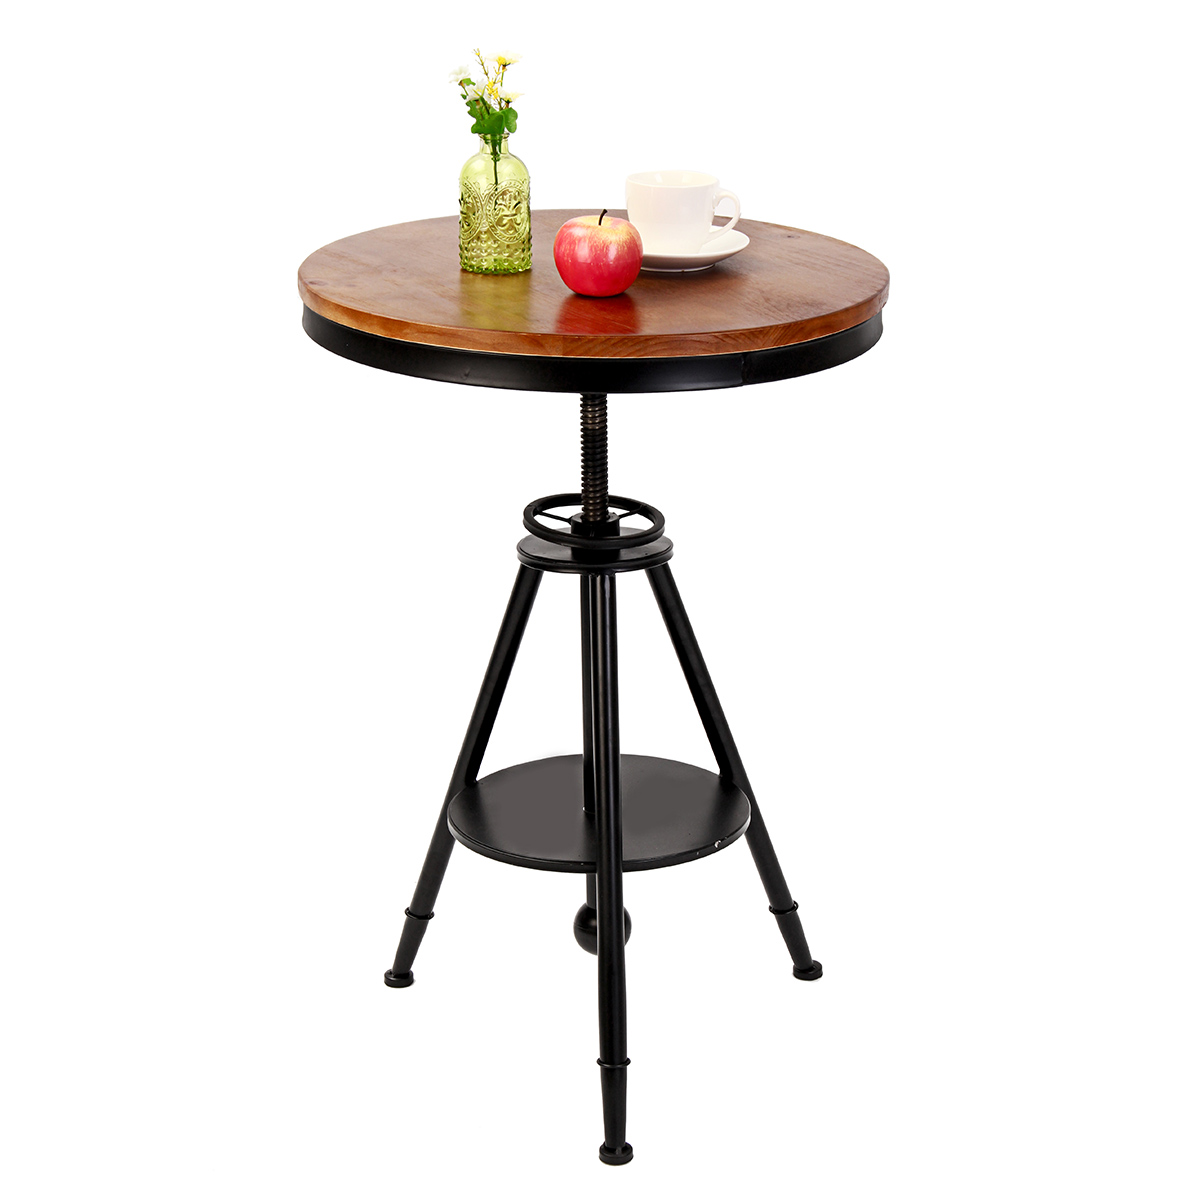 Adjustable Height Outdoor Coffee Dining Table: Bistro Bar Stool Vintage Round Dining Table Wooden